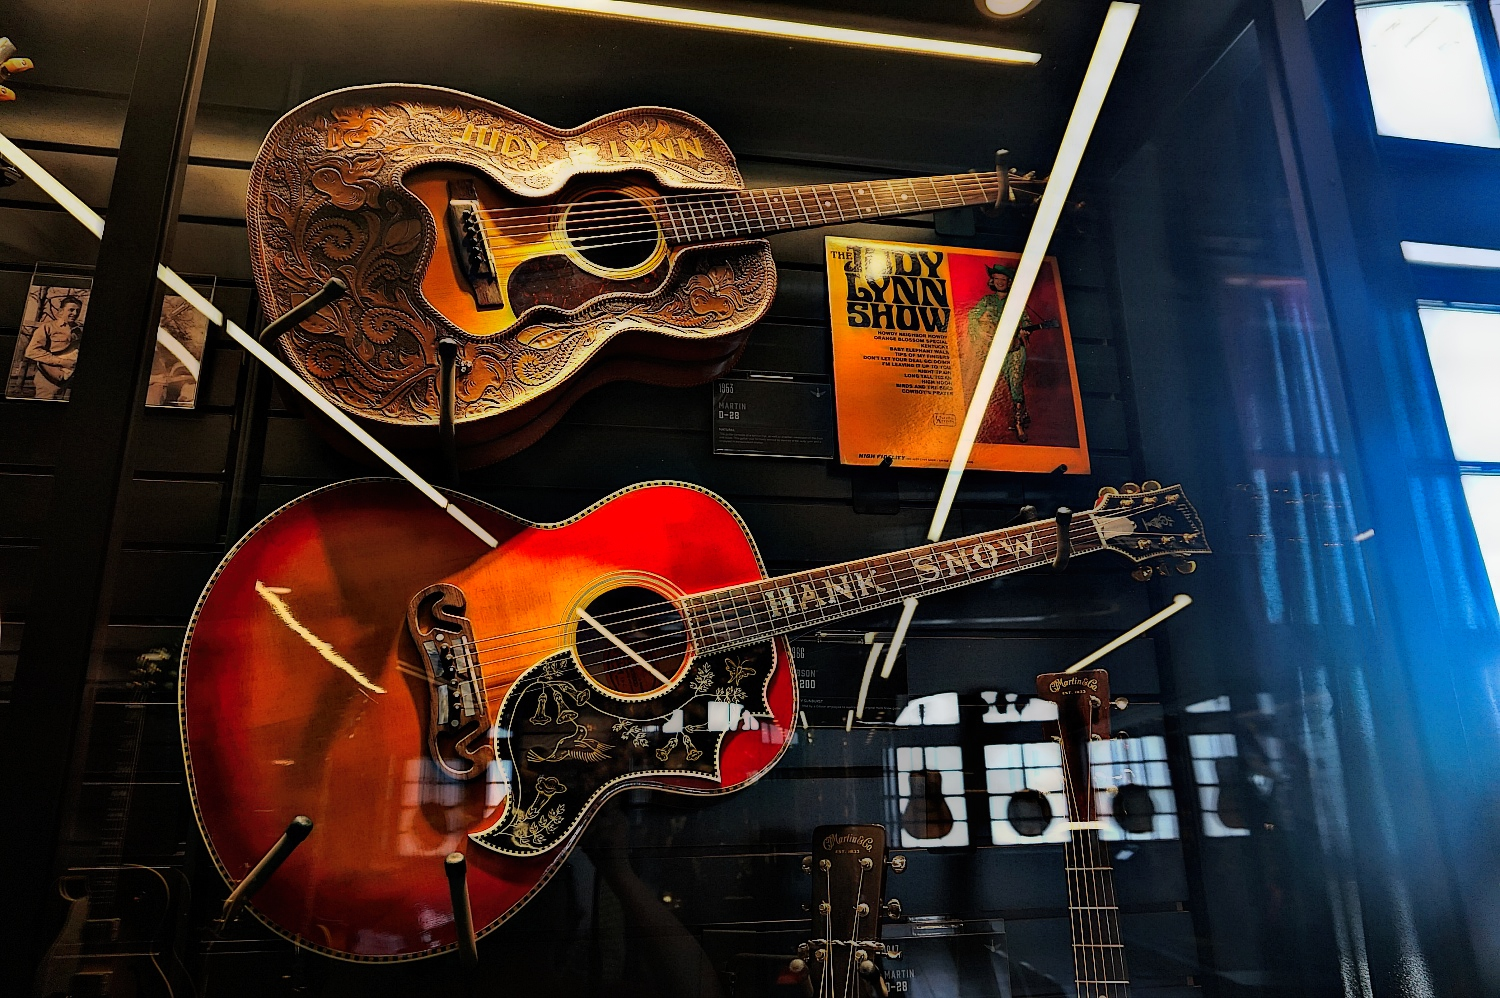 Songbirds Guitar Museum in Chattanooga, Tennessee